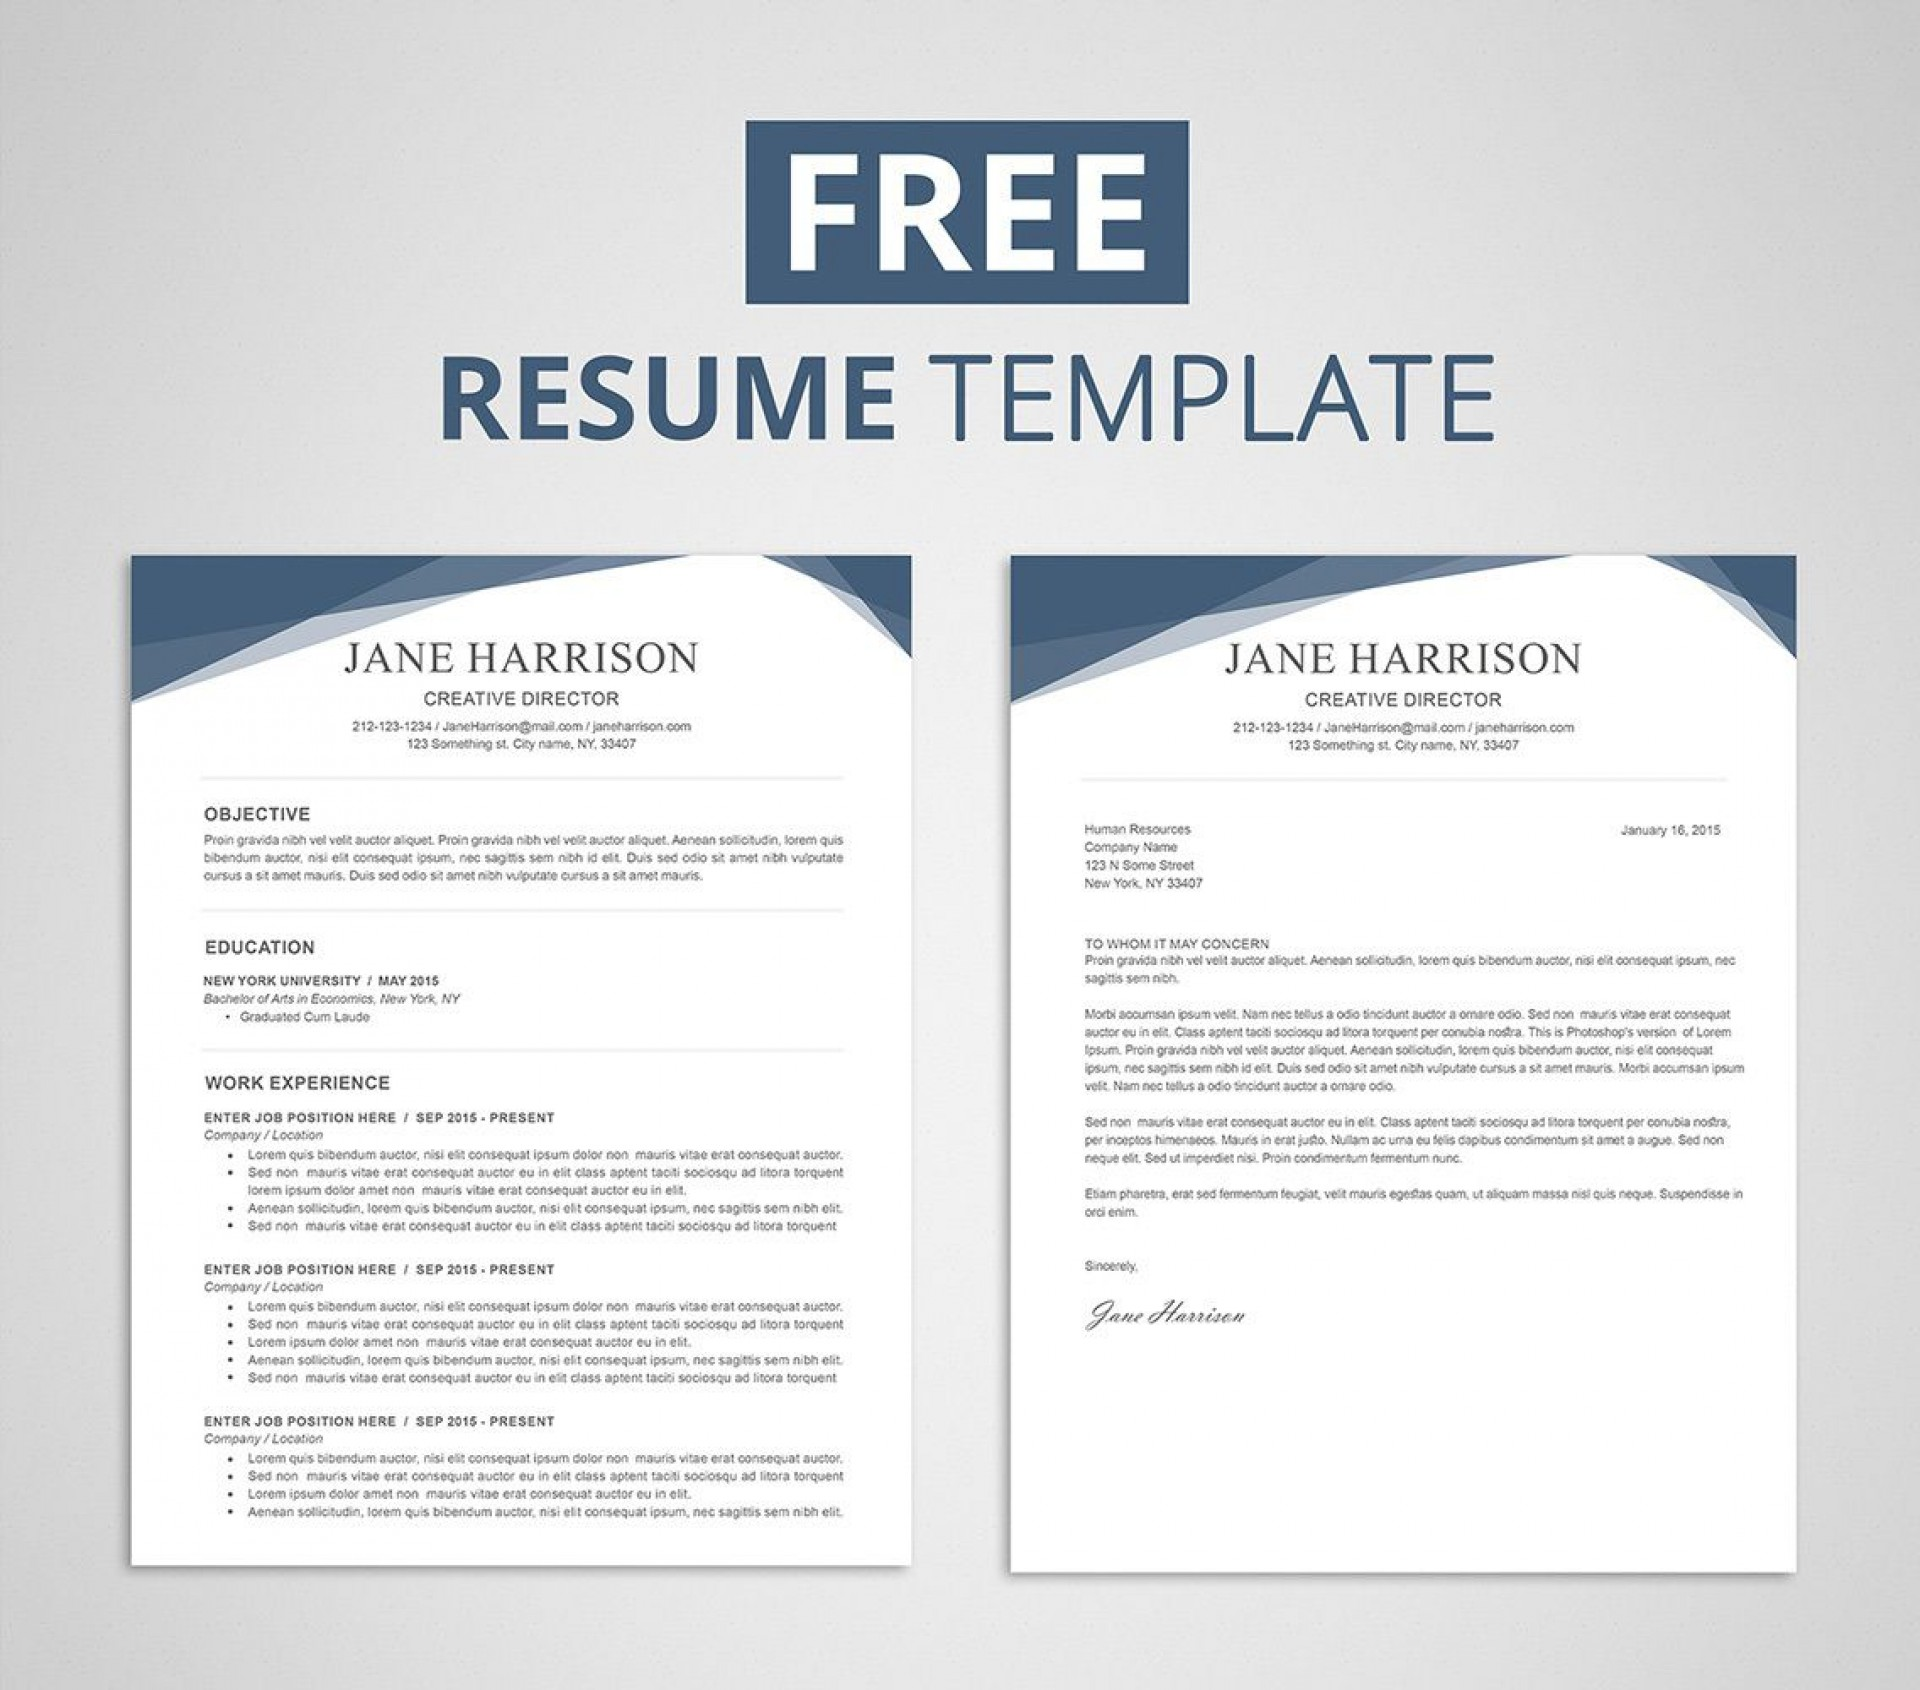 004 Wonderful Resume Template Word 2007 Free Inspiration  Microsoft Office For M1920